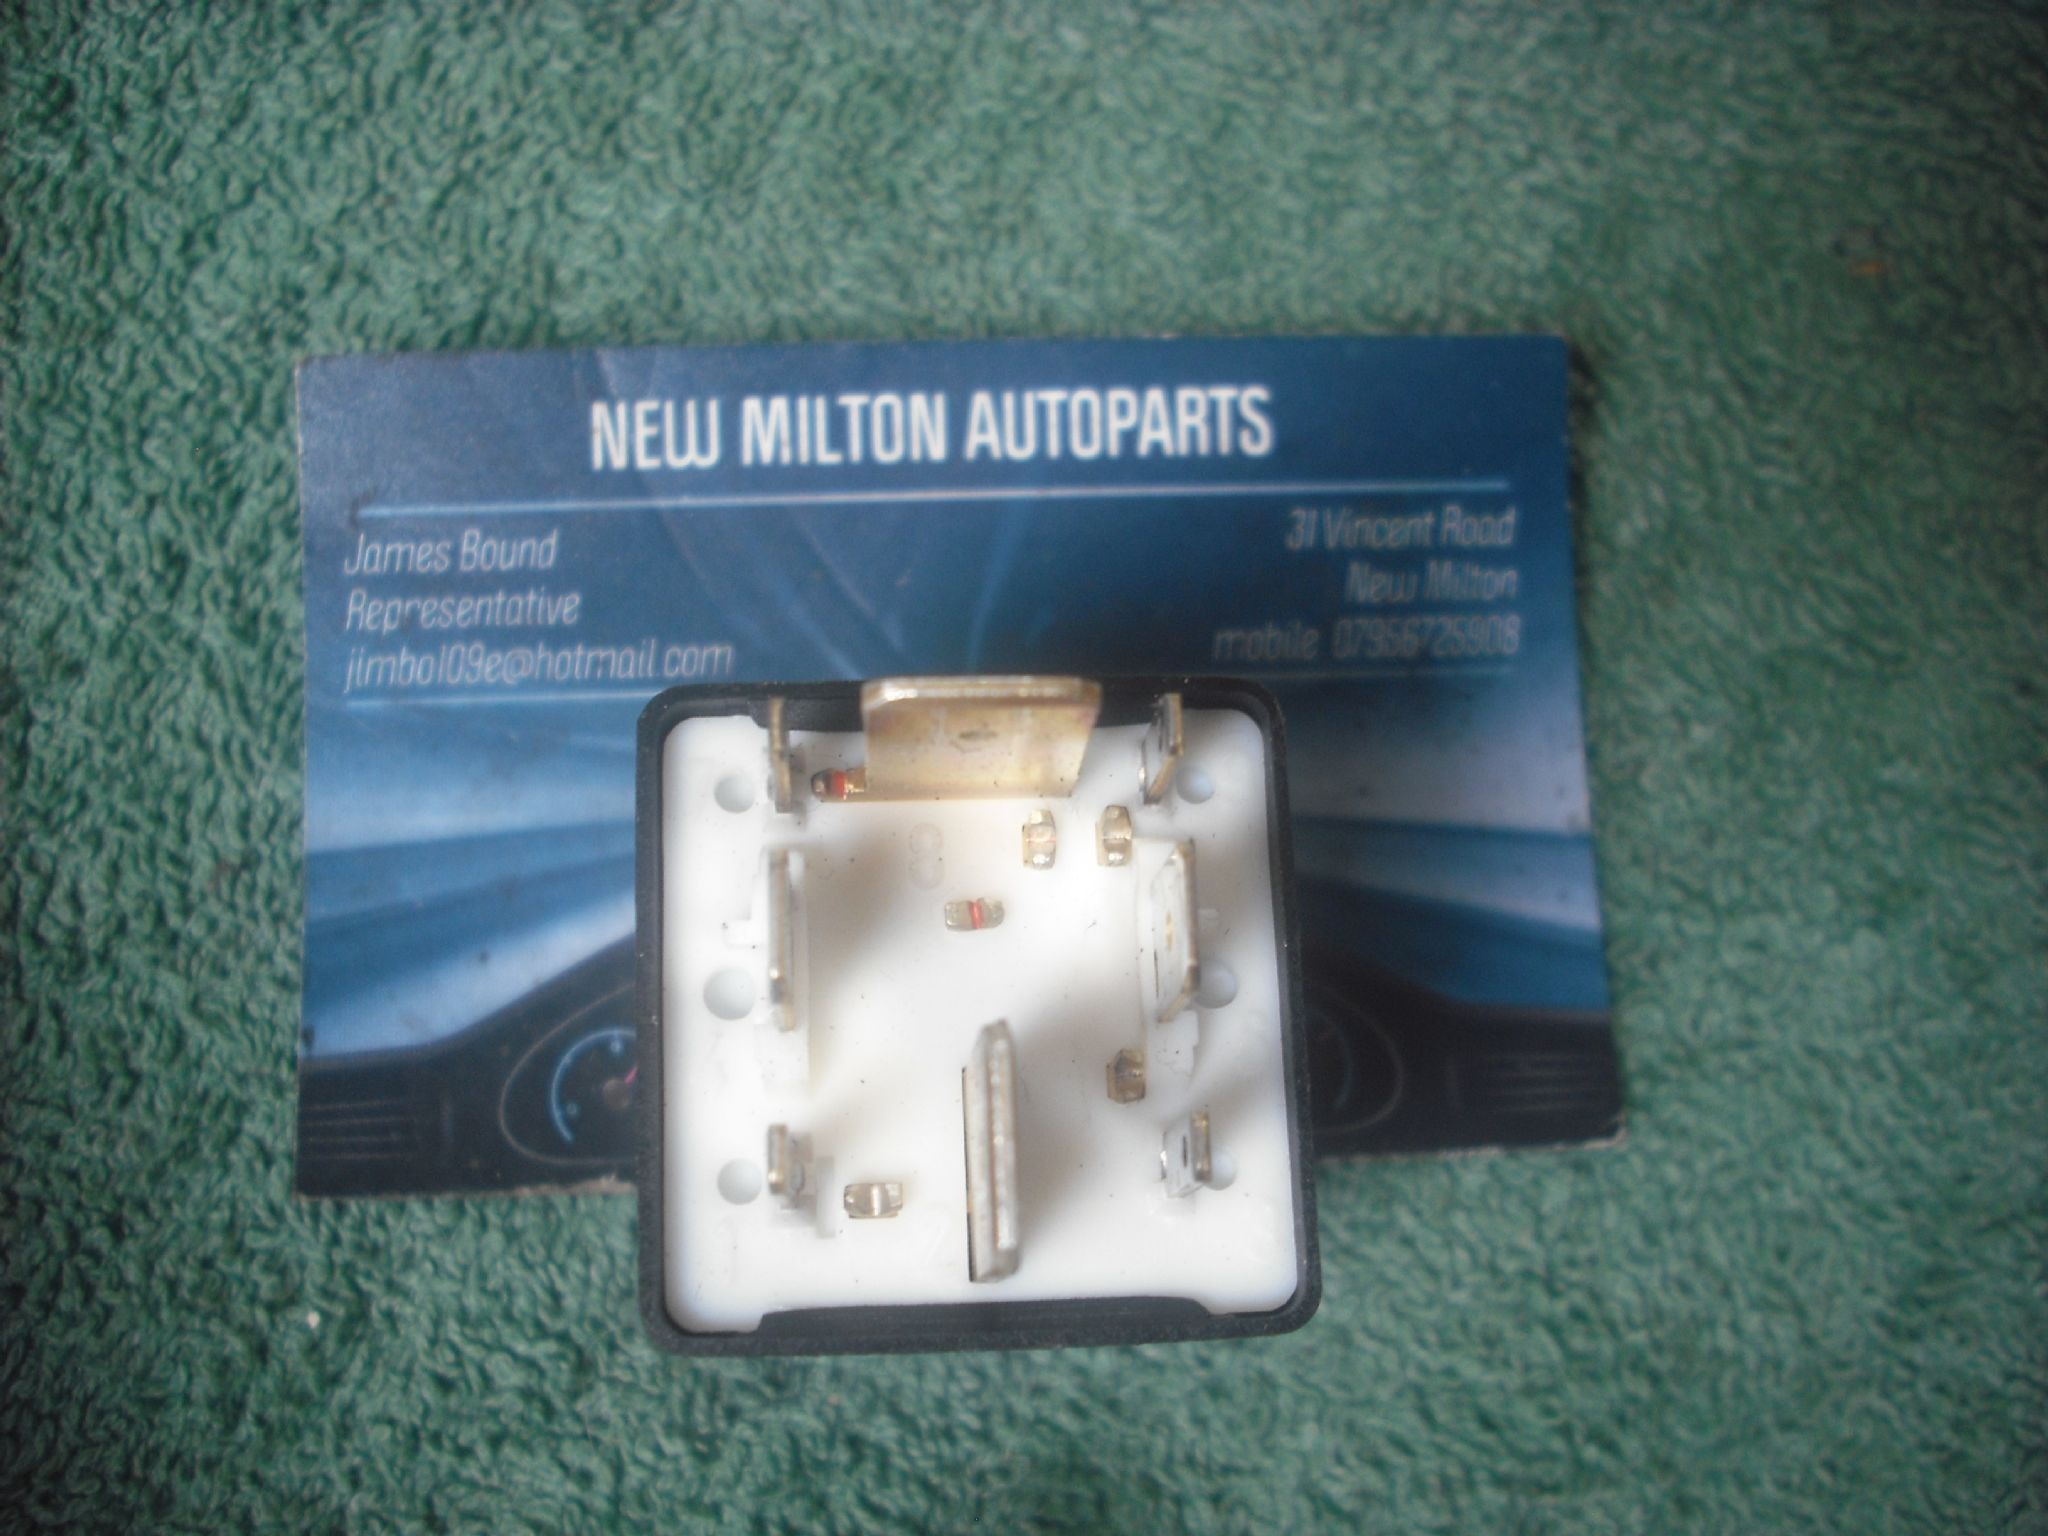 A Genuine Ford Galaxy Vw Volkswagen Sharan Petrol Fuel Pump Relay Peugeot 206 Fuse Location 409 1j0906383 898955000